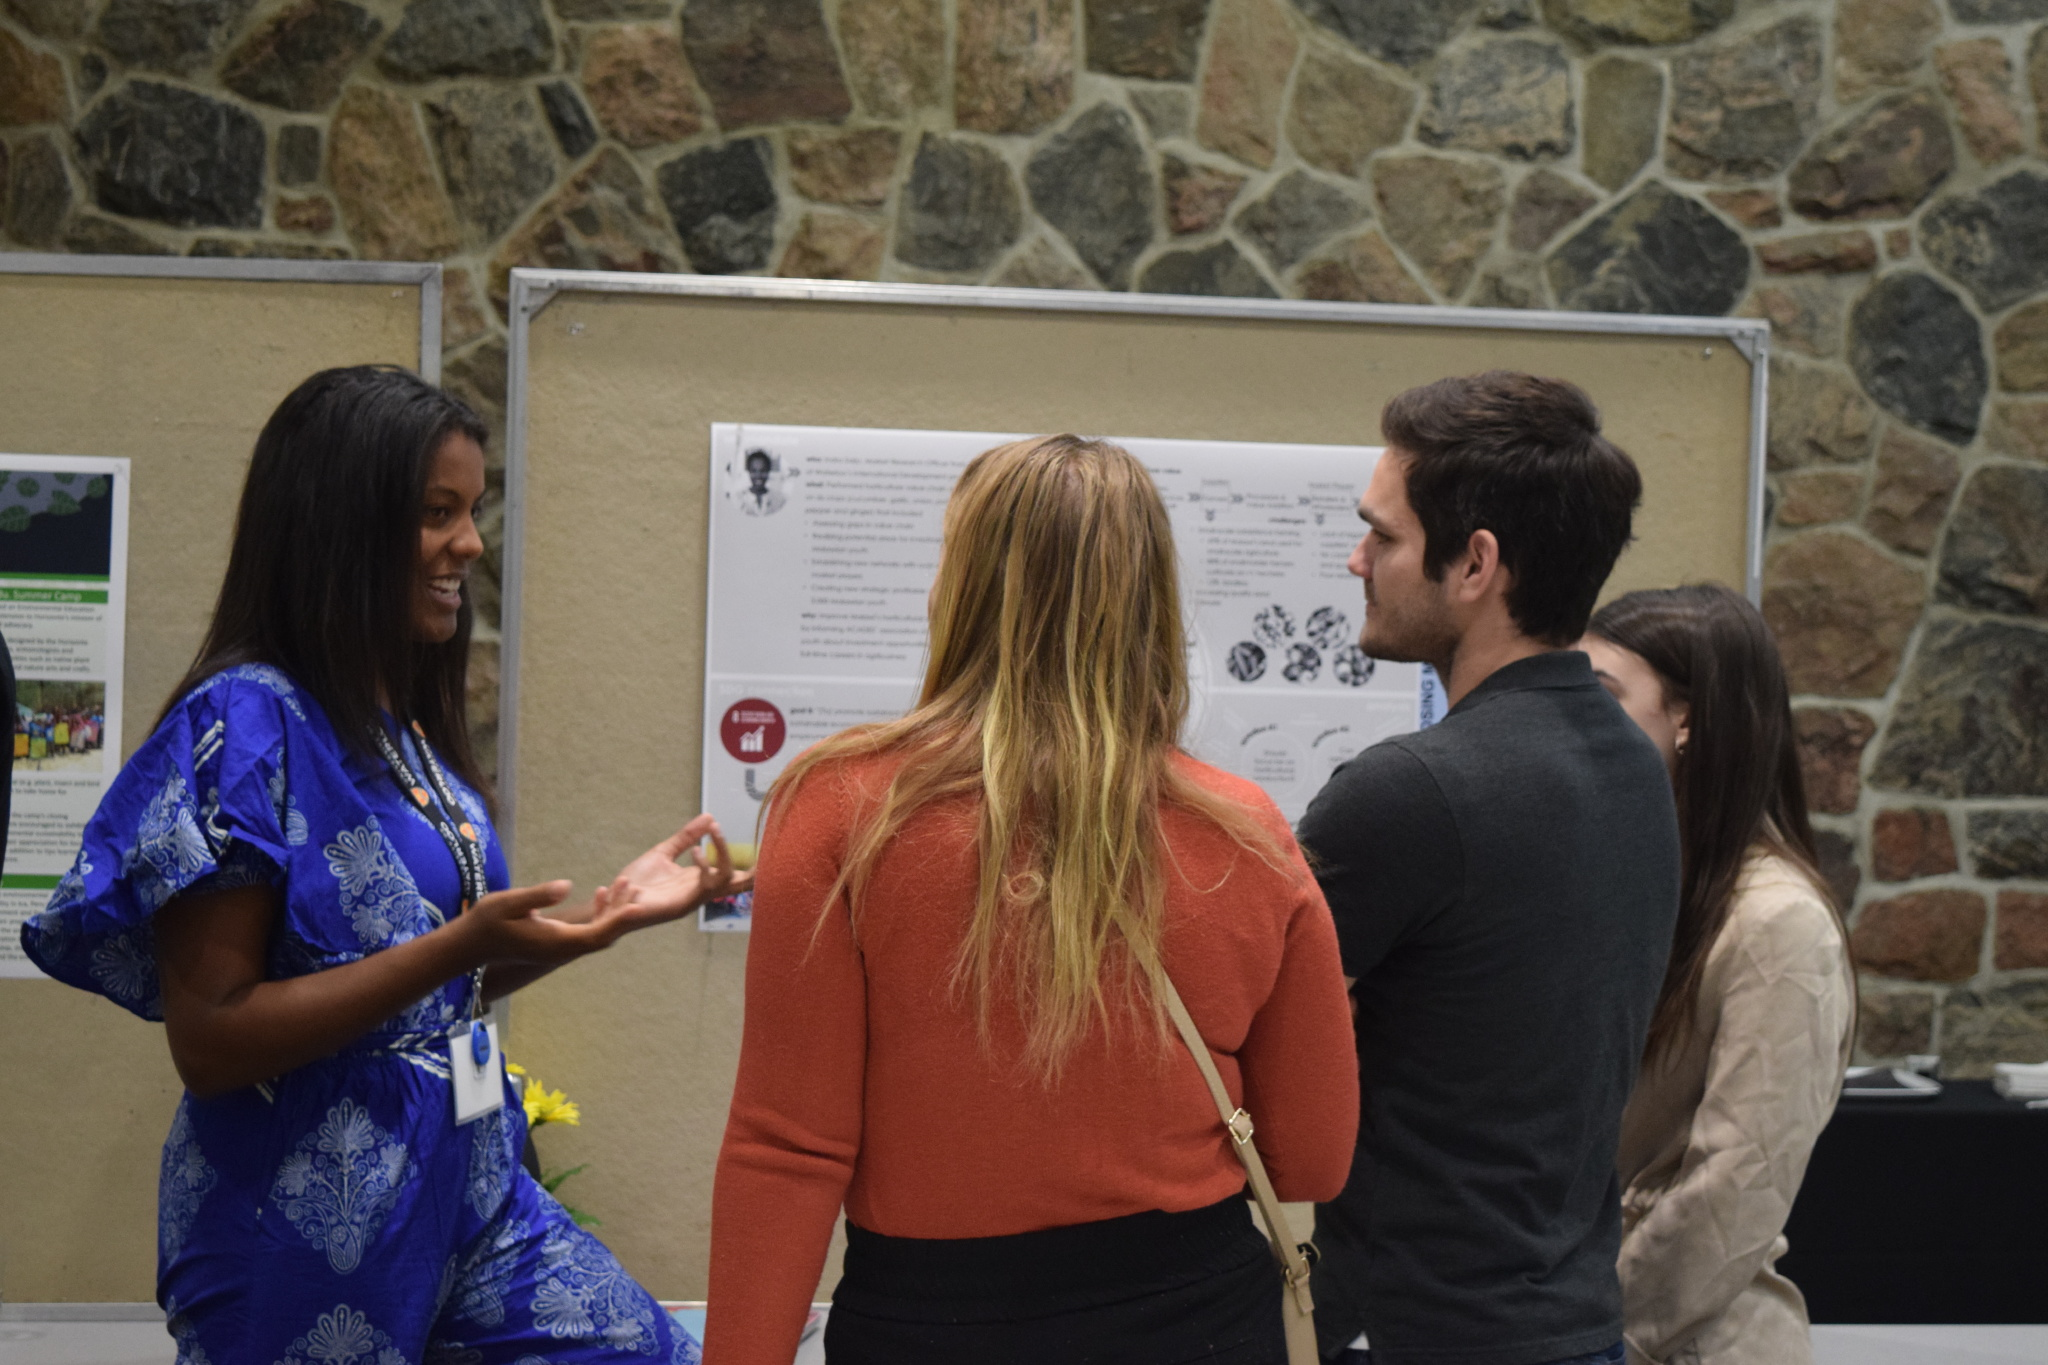 International Development students consider a poster during the capstone event